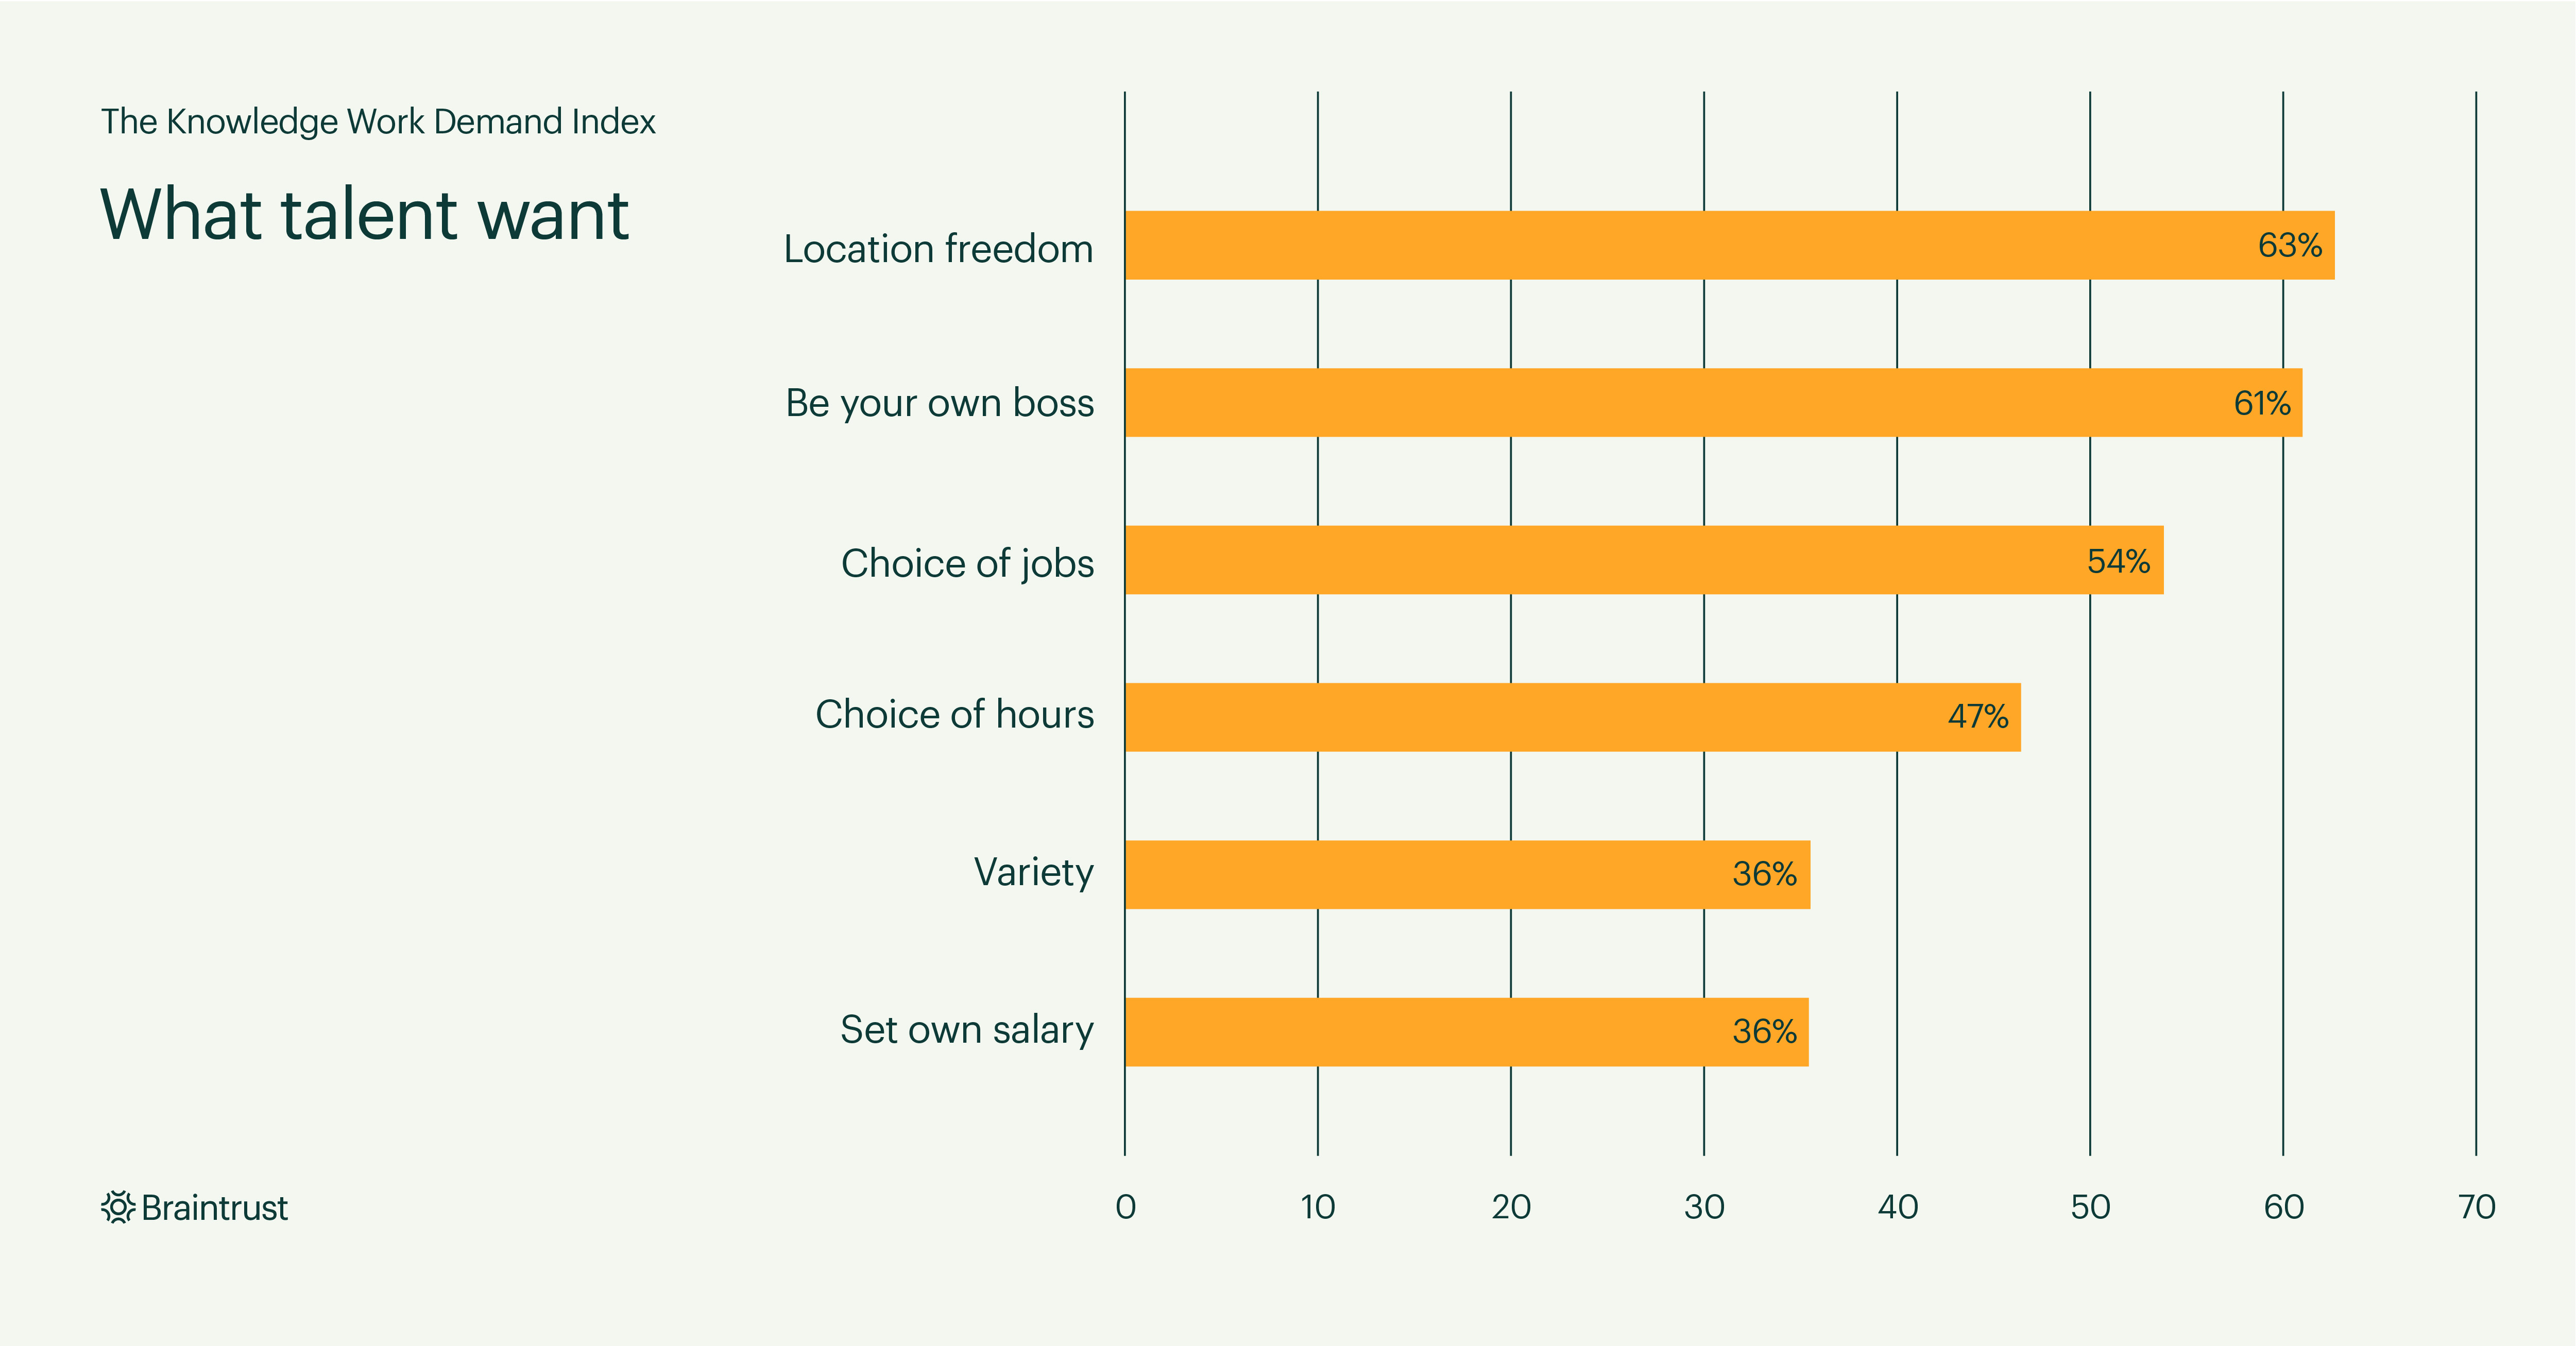 Braintrust announces Knowledge Work Demand Index reporting that 63% of talent want location freedom